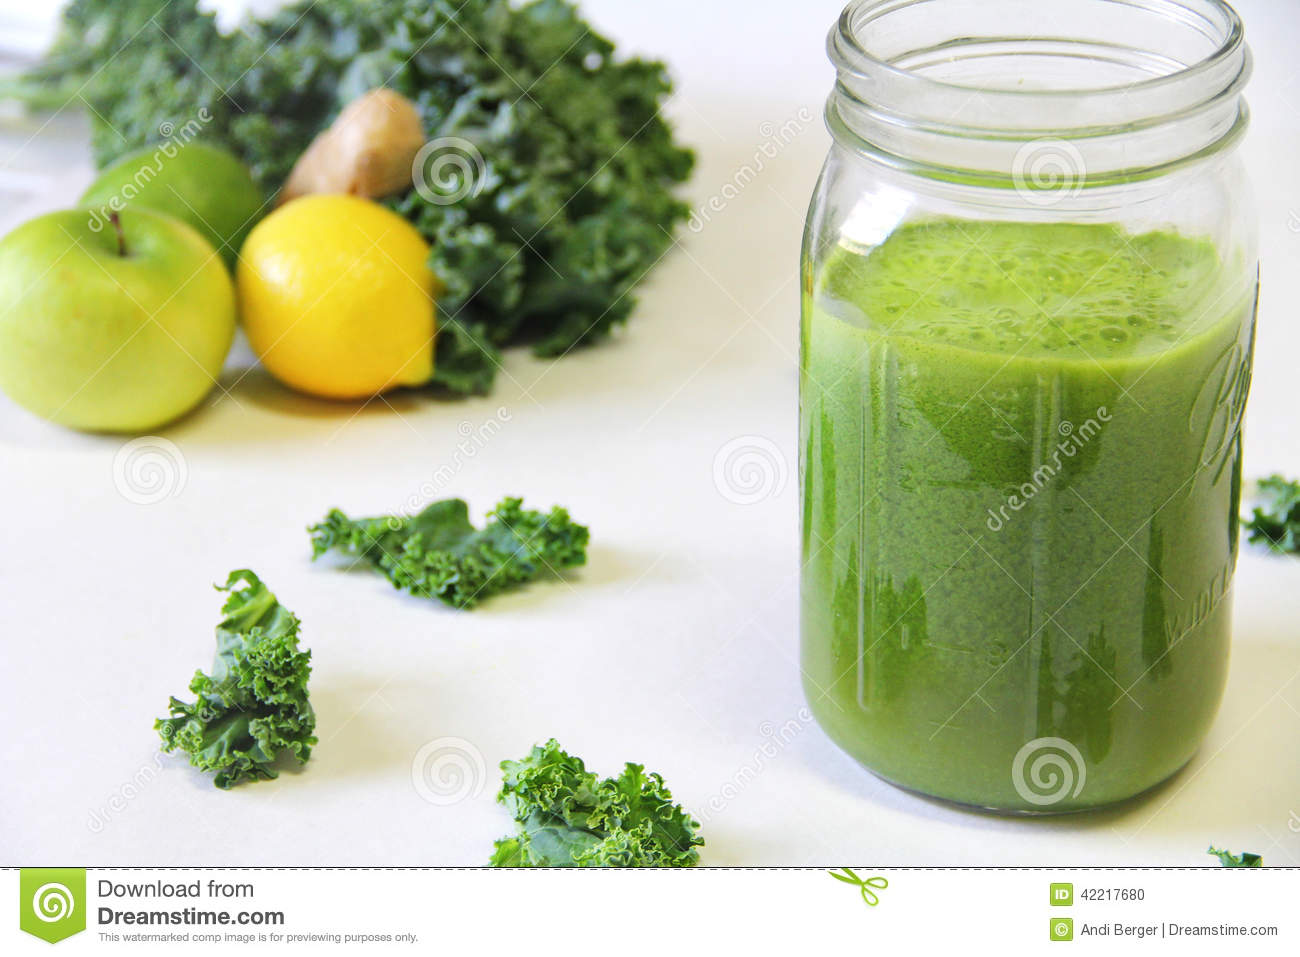 Green juice jar